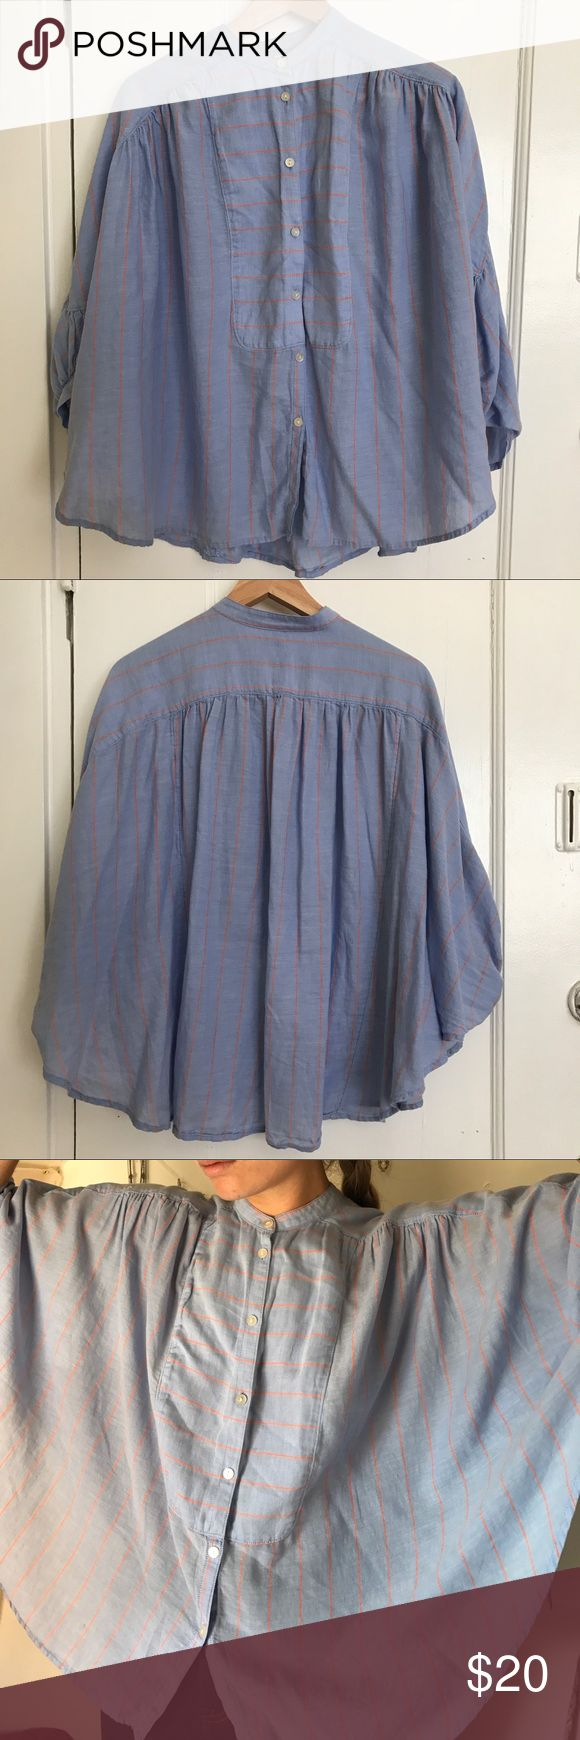 Blue Levi's Smock Soft, beautiful, button-down light blue smock with vertical orange stripes. Shape is similar to a poncho, but I consider it a blouse because of how light it is. A very comfortable piece in warm or hot weather. Will keep you covered, but cool. Levi's Tops